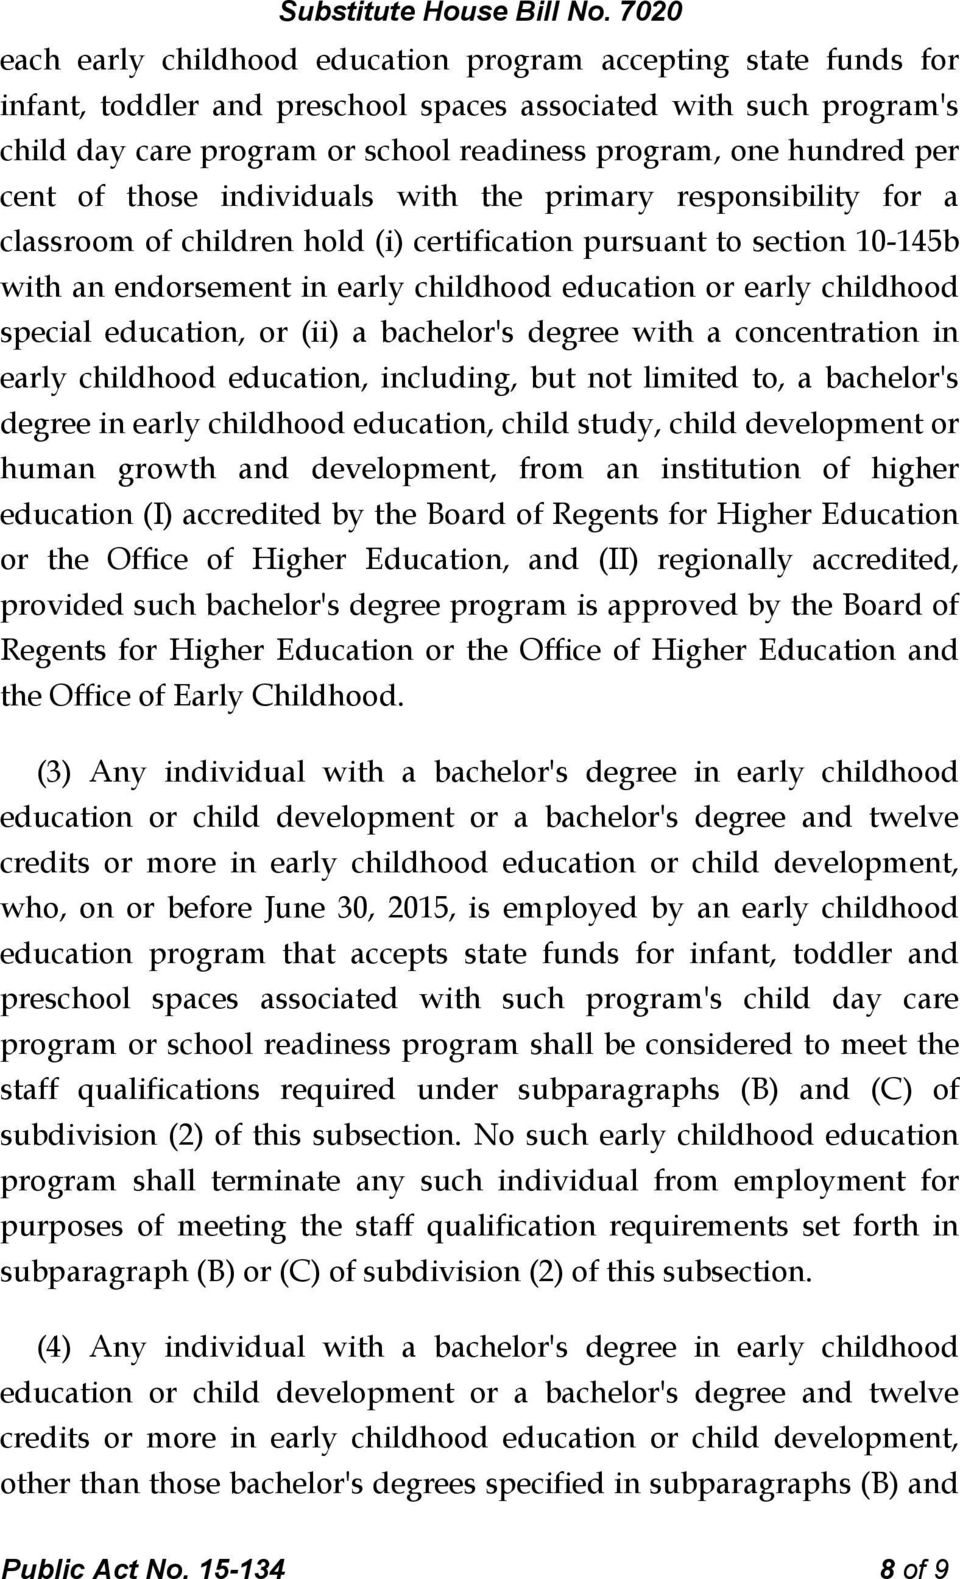 childhood special education, or (ii) a bachelor's degree with a concentration in early childhood education, including, but not limited to, a bachelor's degree in early childhood education, child